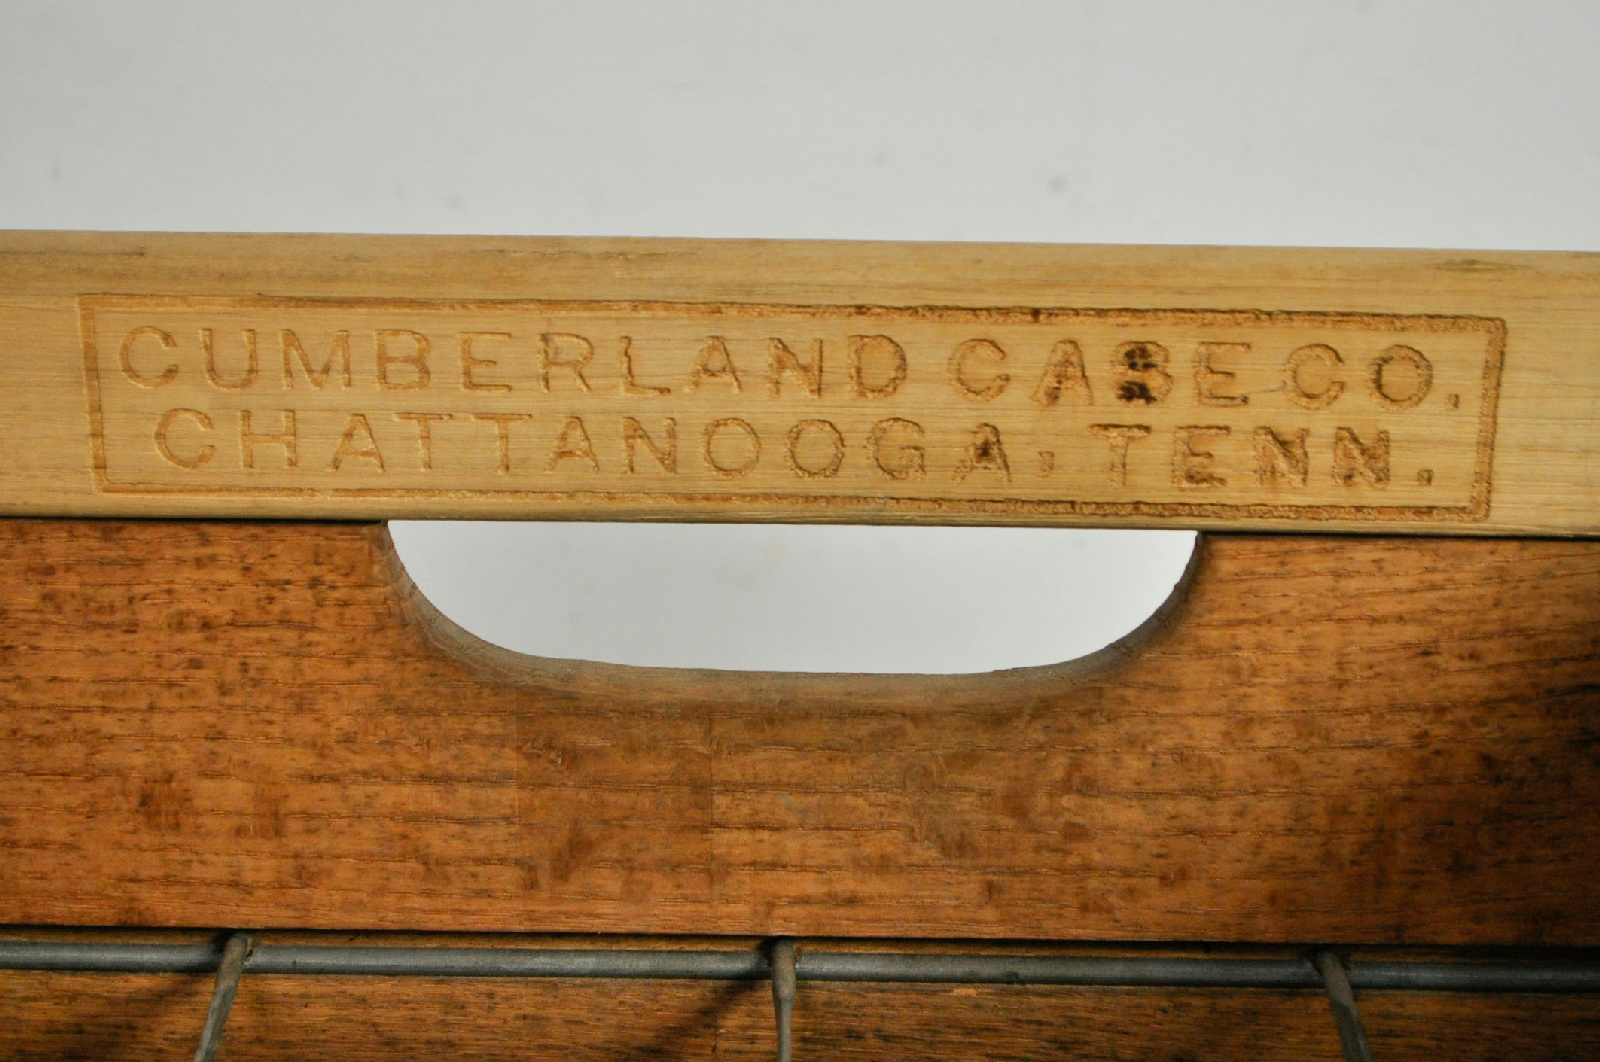 Cumberland metals case